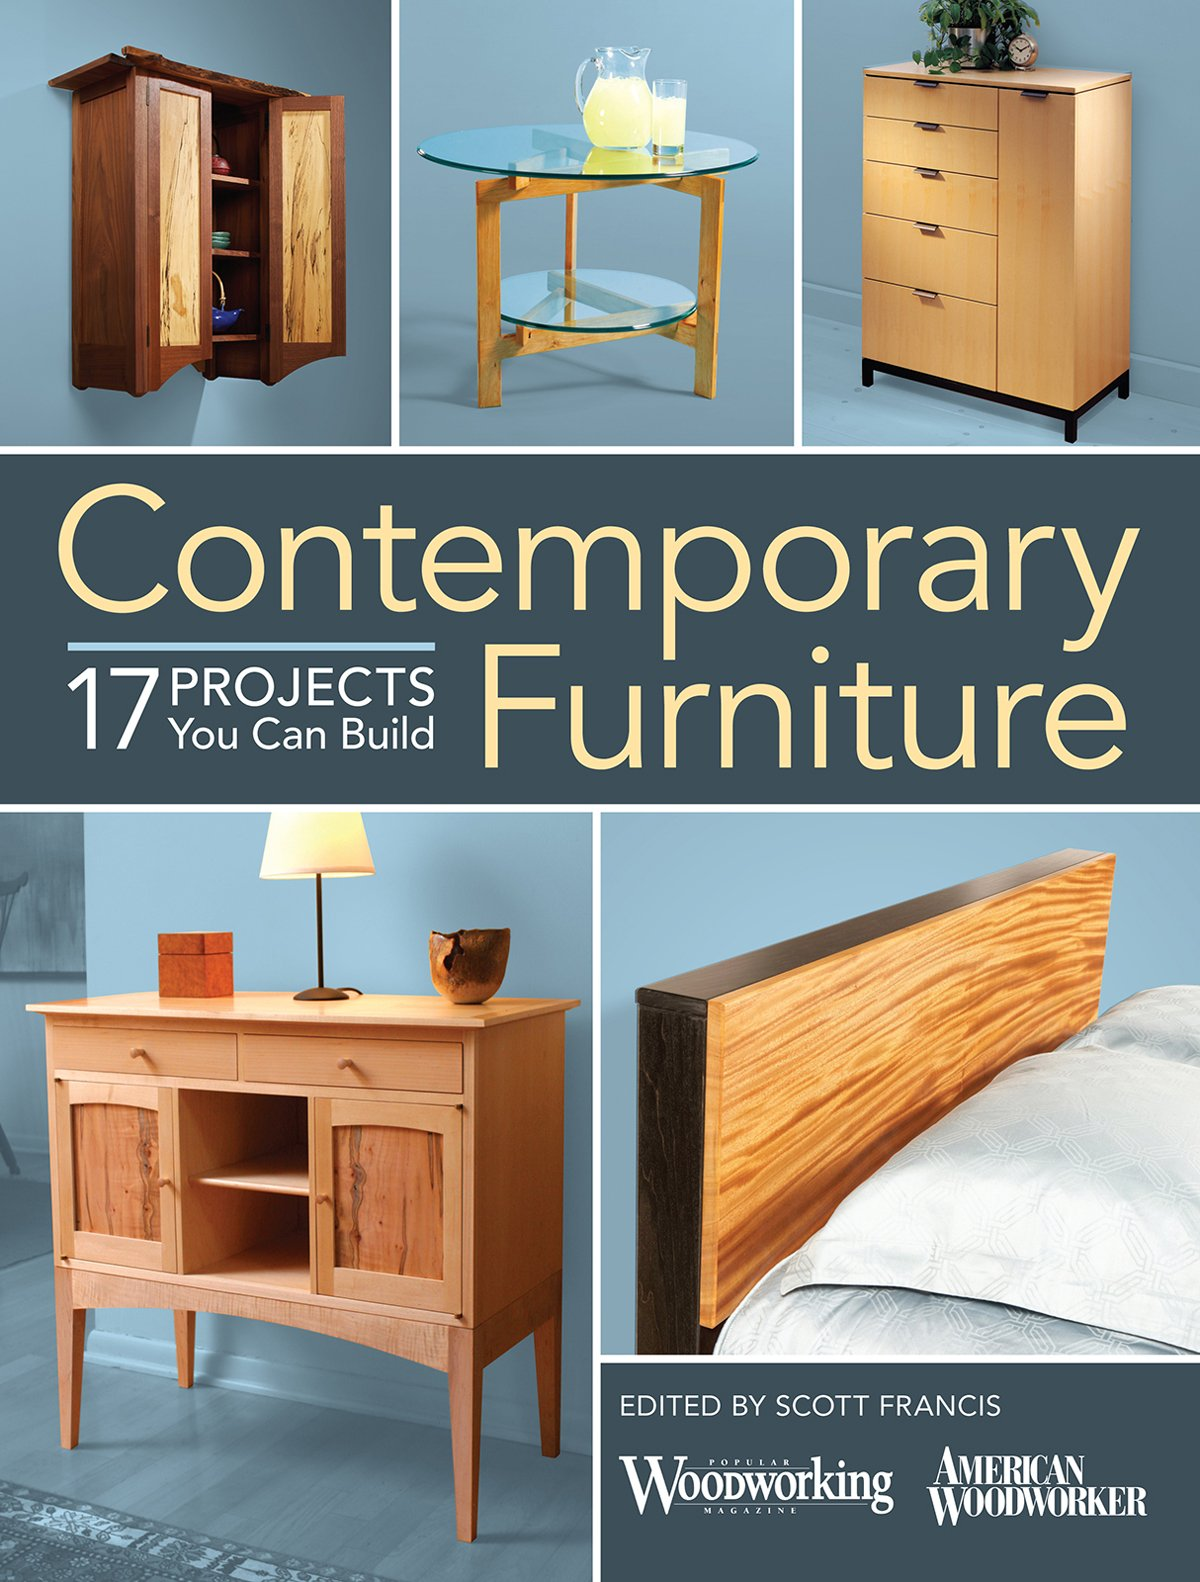 Merveilleux Contemporary Furniture: 17 Projects You Can Build: Scott Francis:  9781440345685: Amazon.com: Books